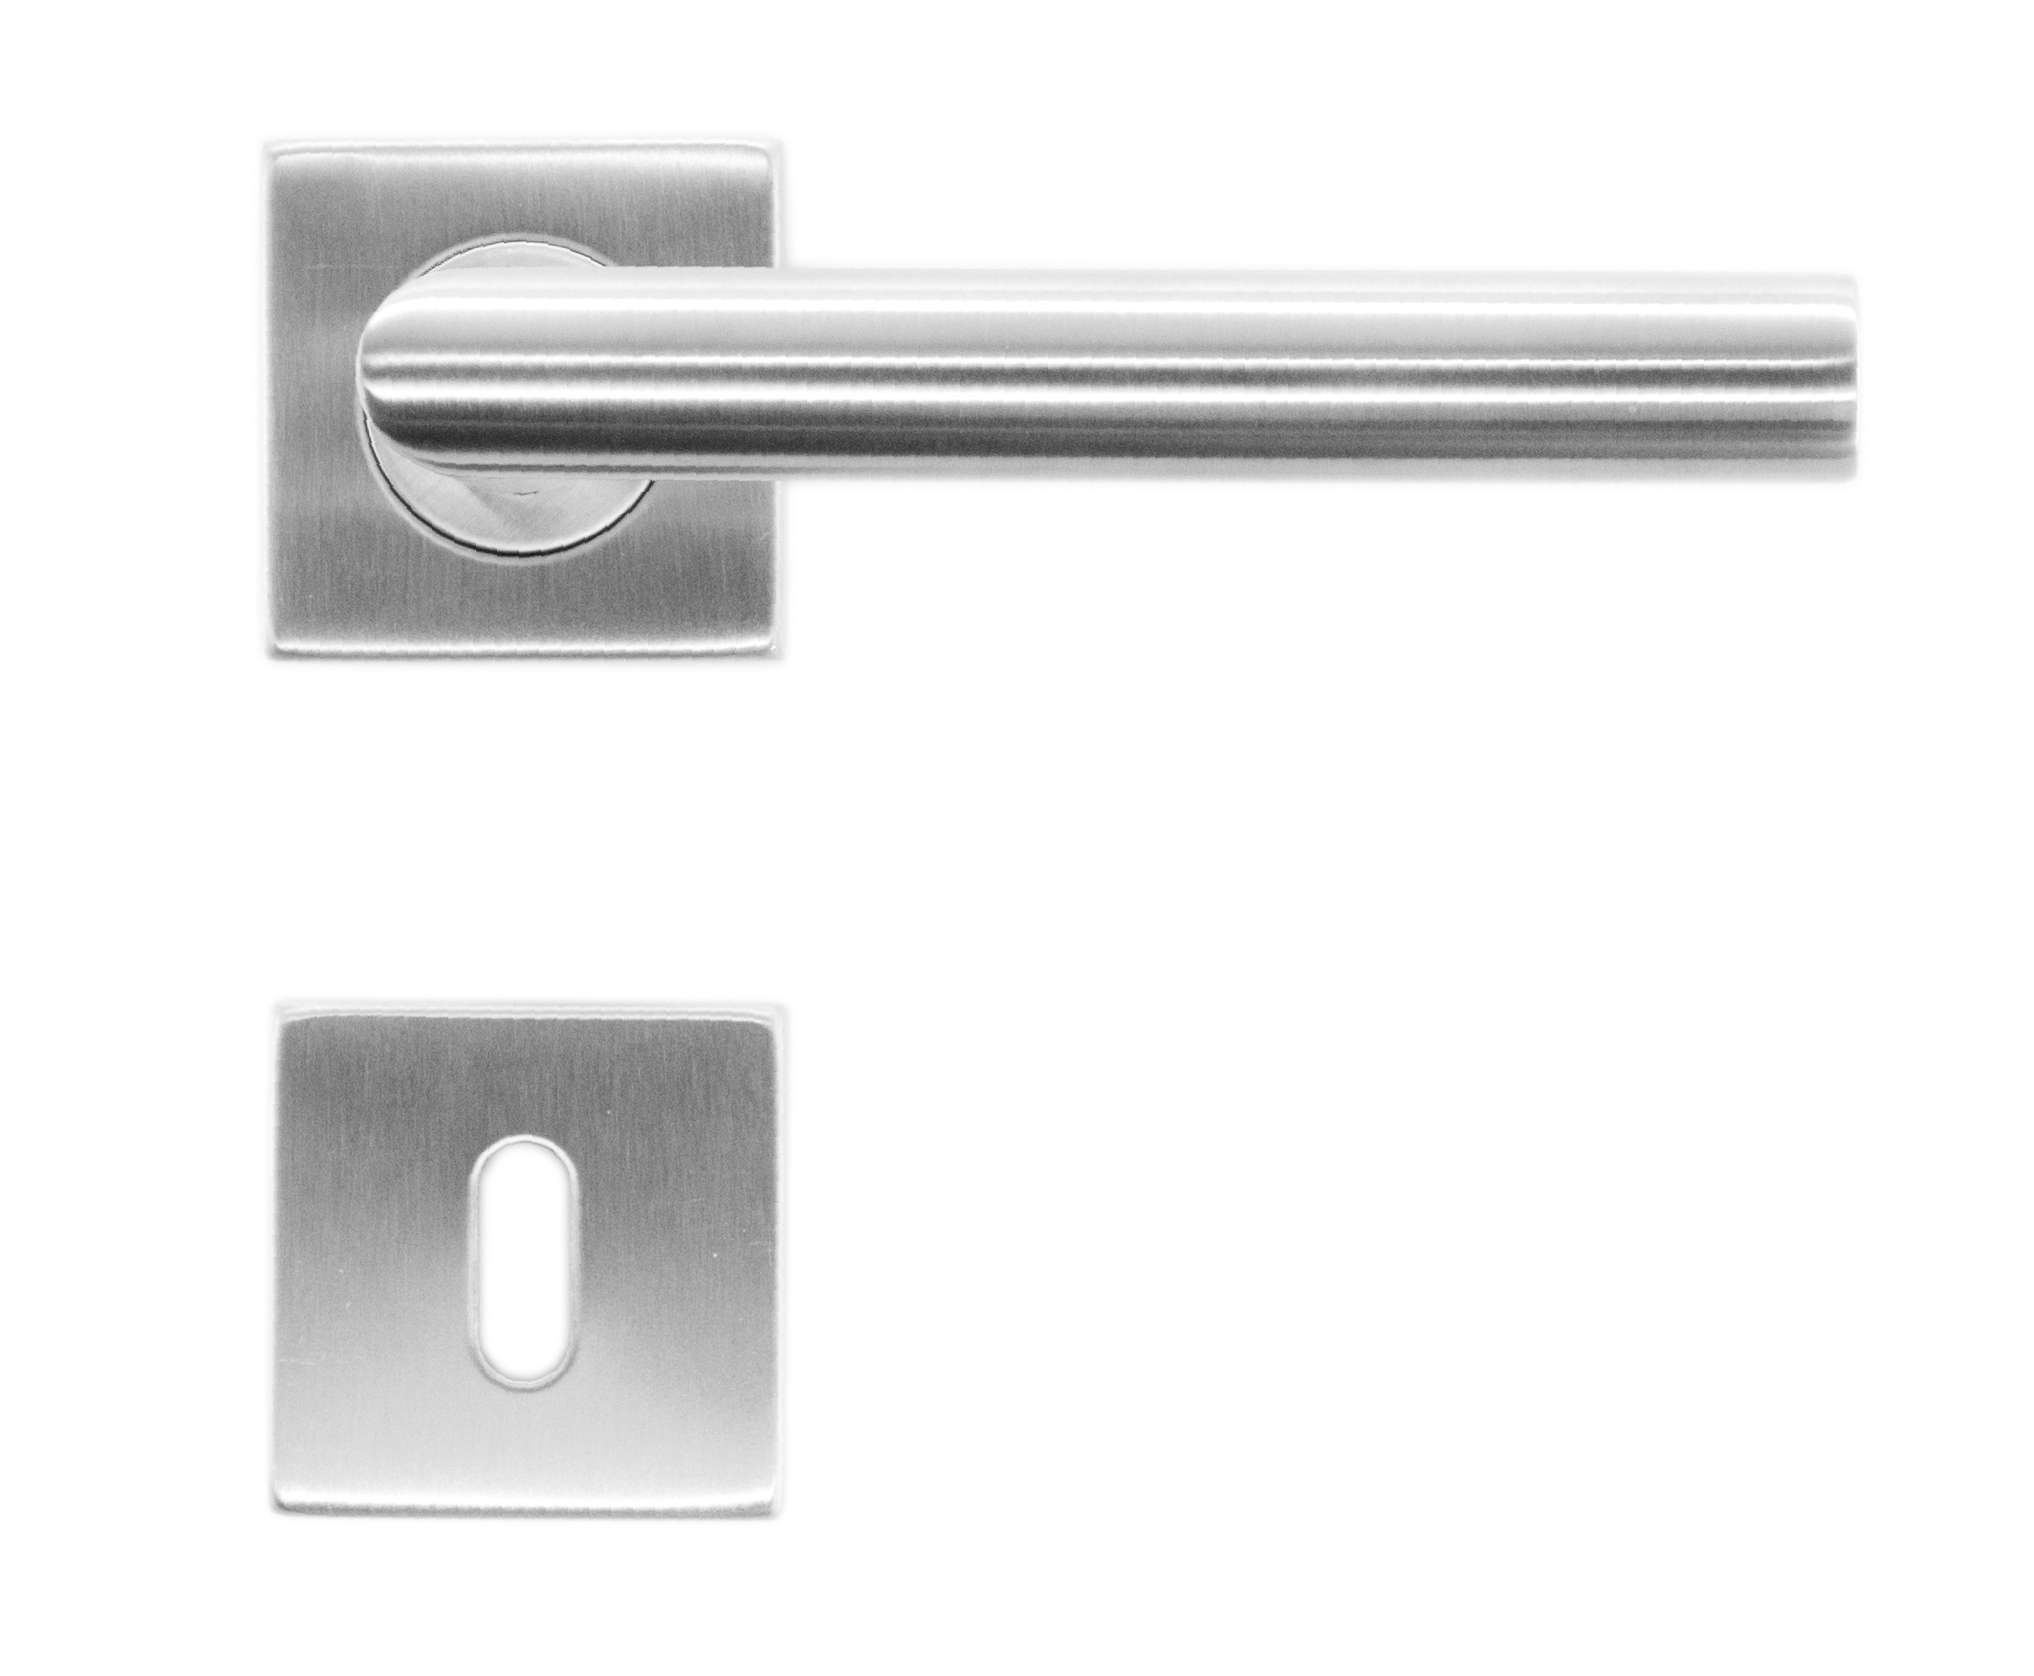 BEQUILLE pro SQUARE I SHAPE 19MM INOX PLUS R+E